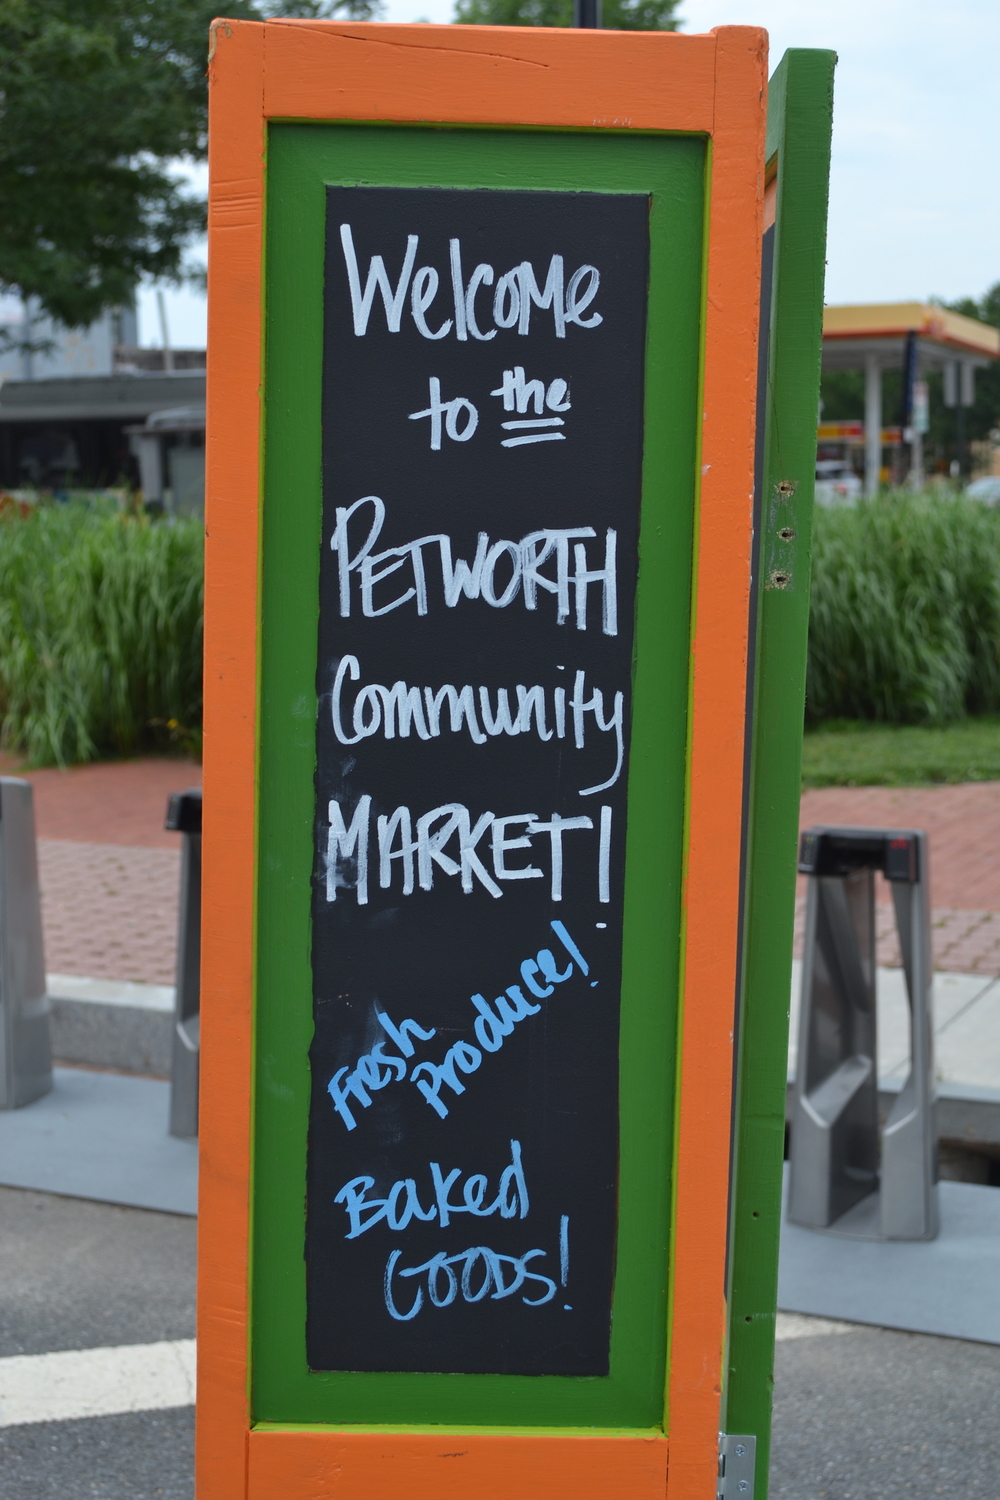 Petworth Market 6-13-15